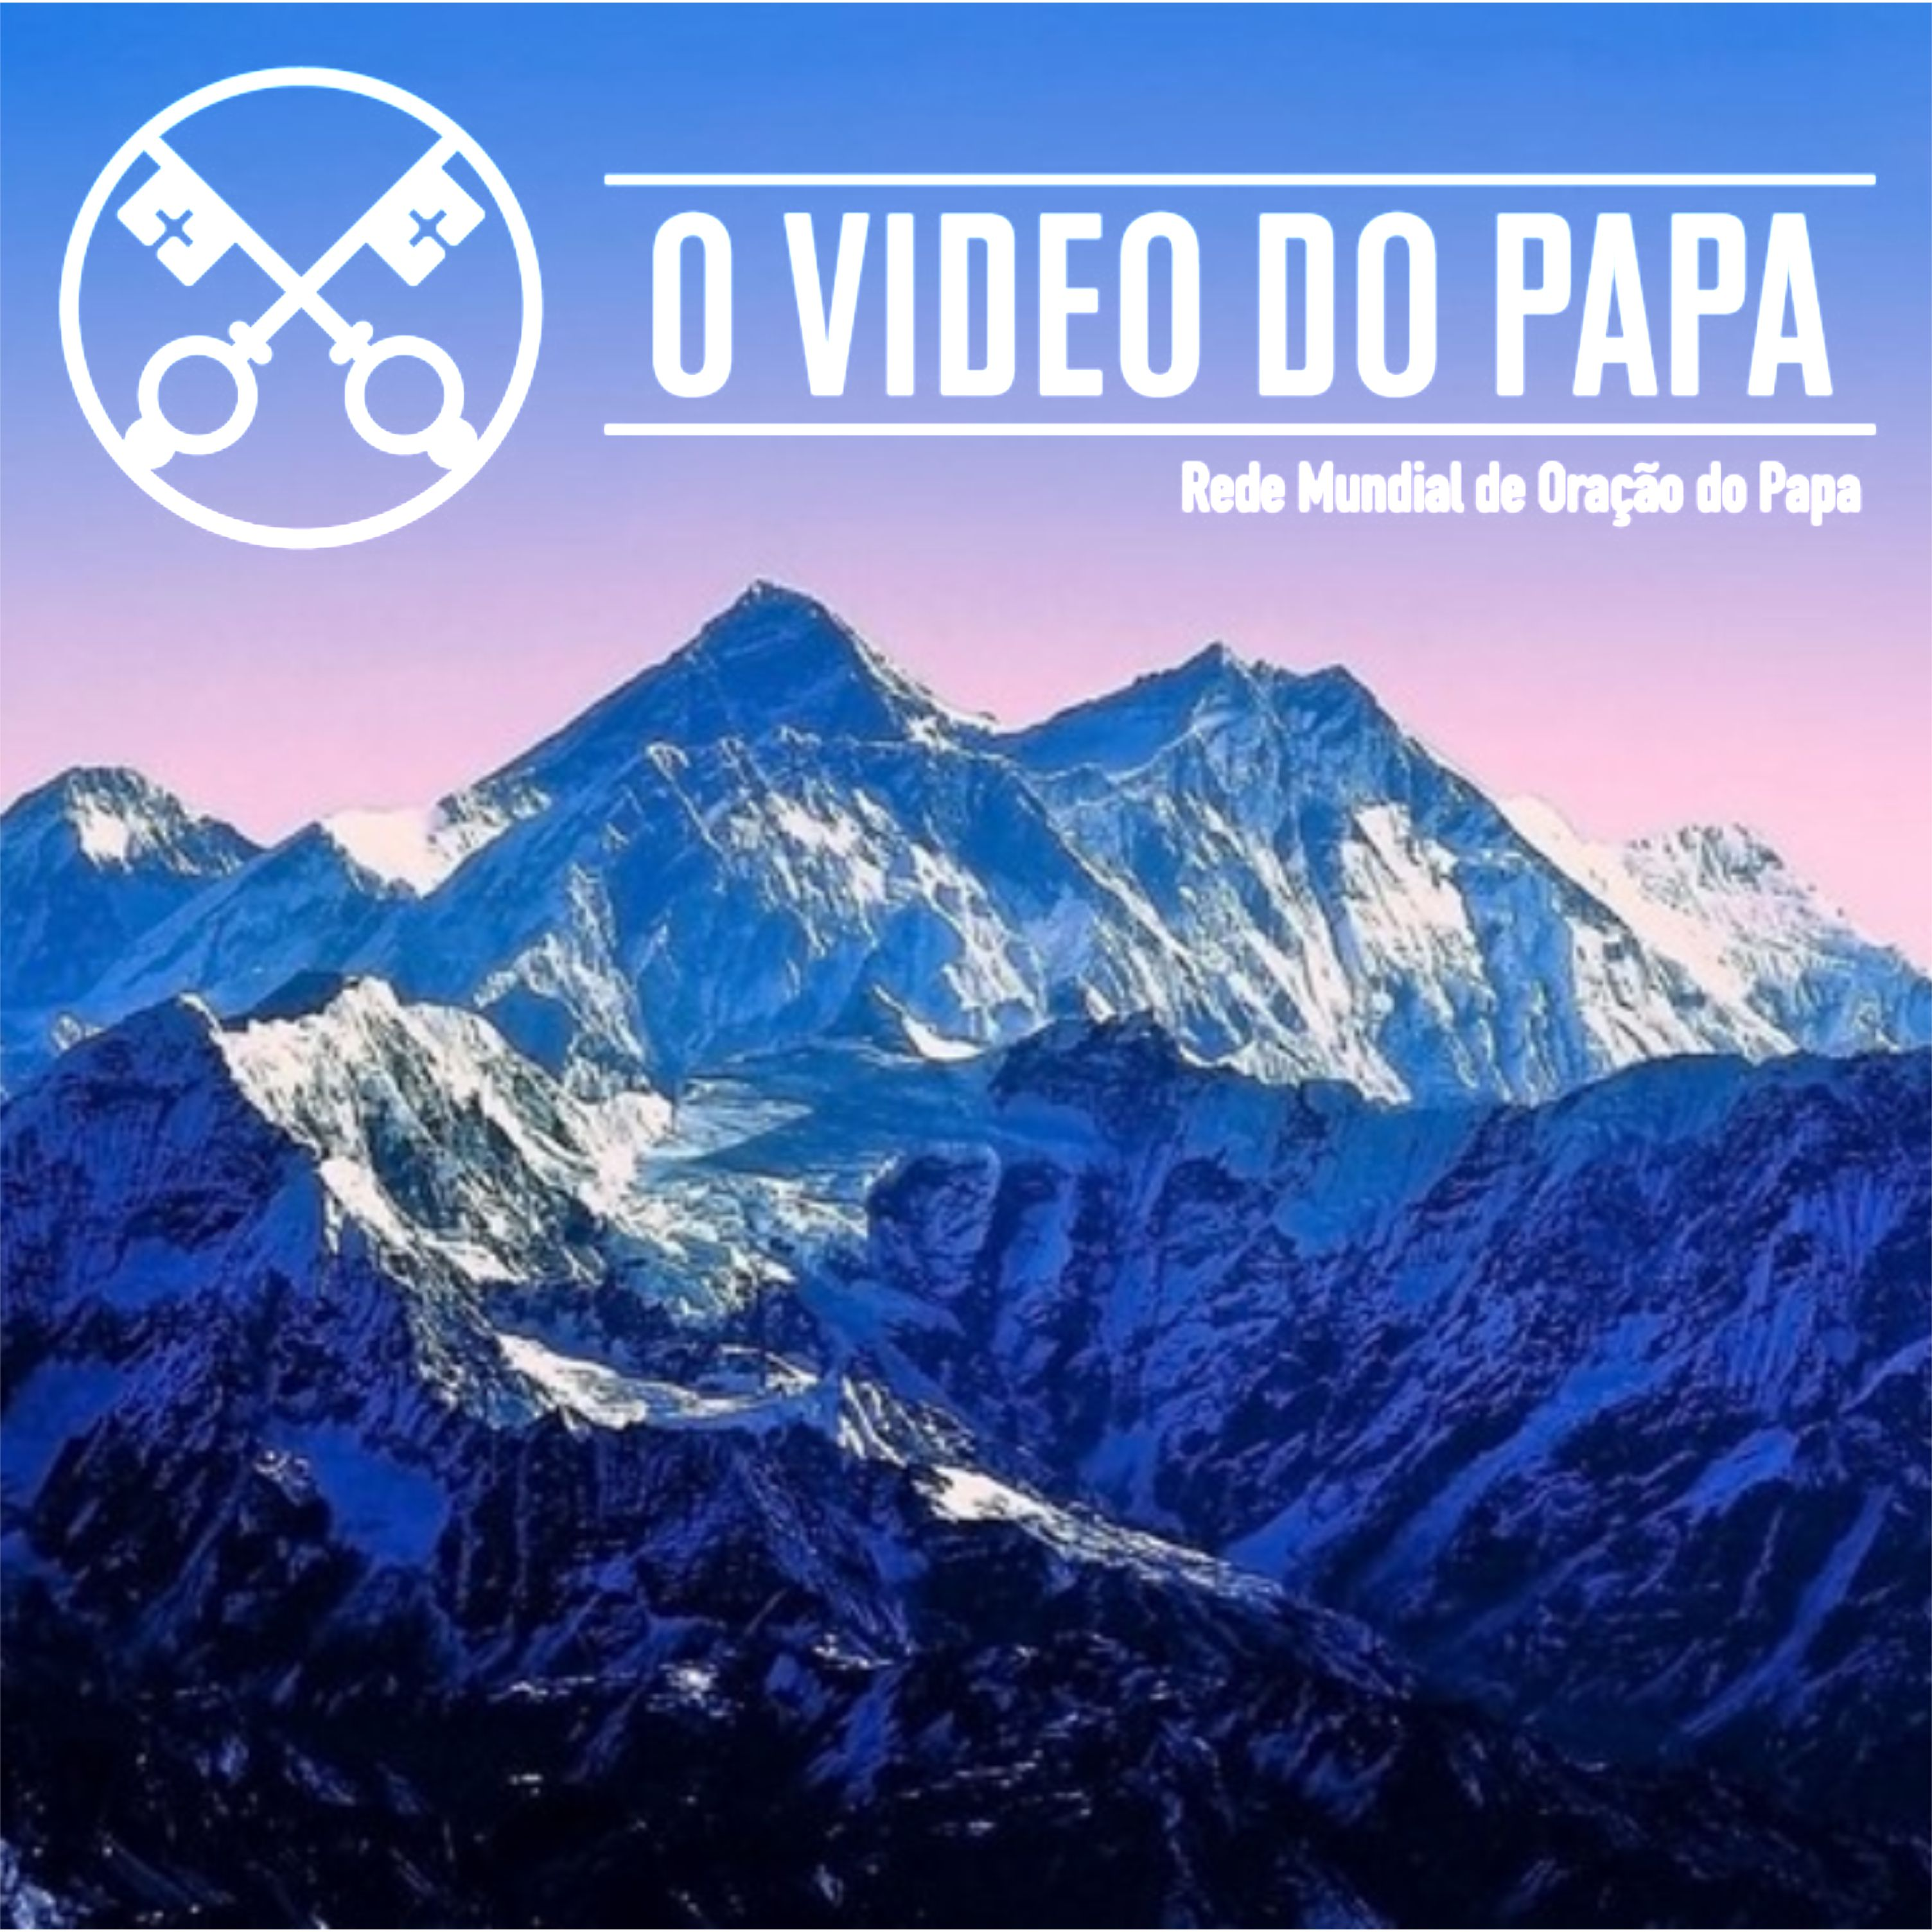 O VÍDEO DO PAPA